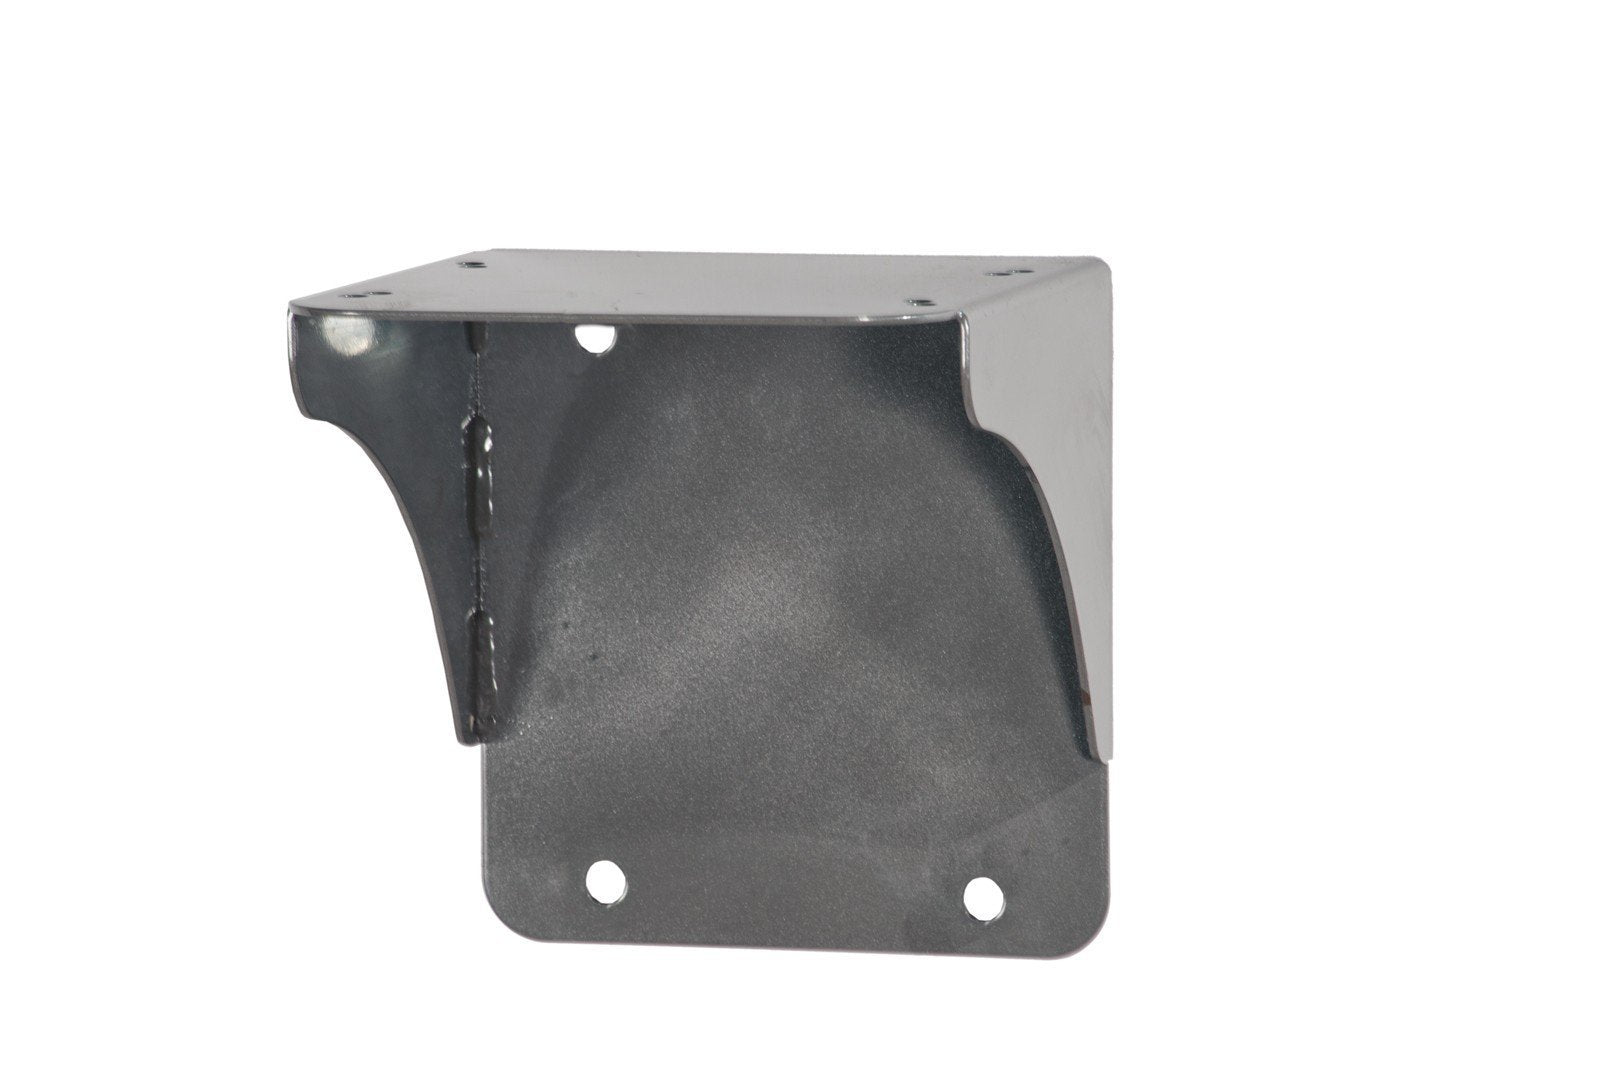 025-1266-000 - Wall fixed bracket